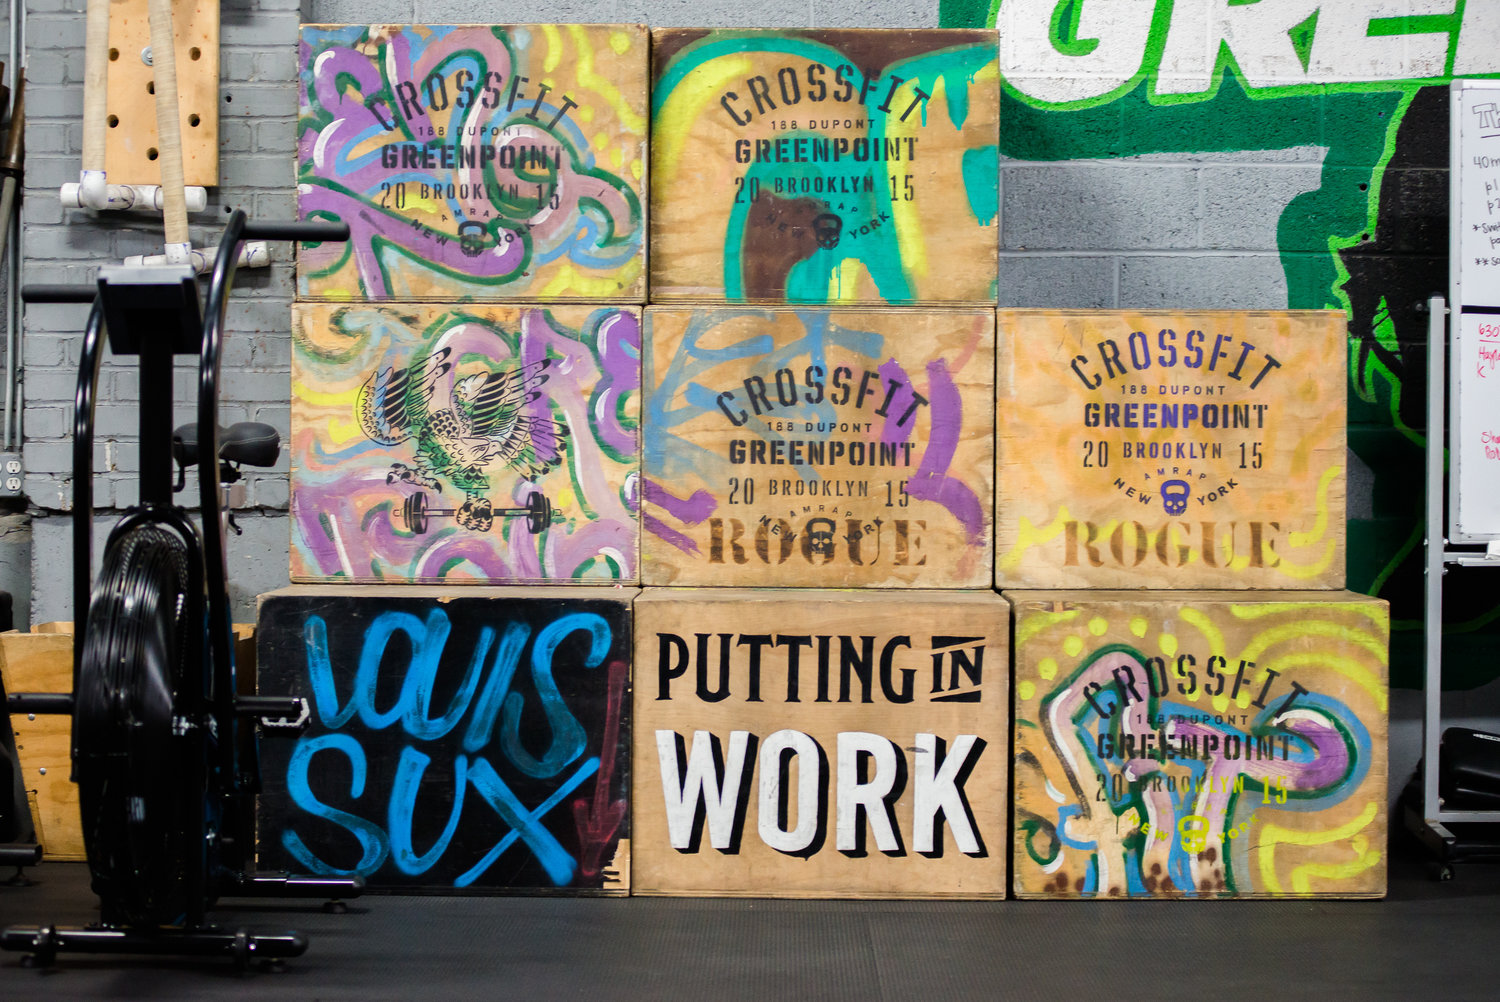 CrossFit Greenpoint Has Been Serving The North Brooklyn Community Since 2012